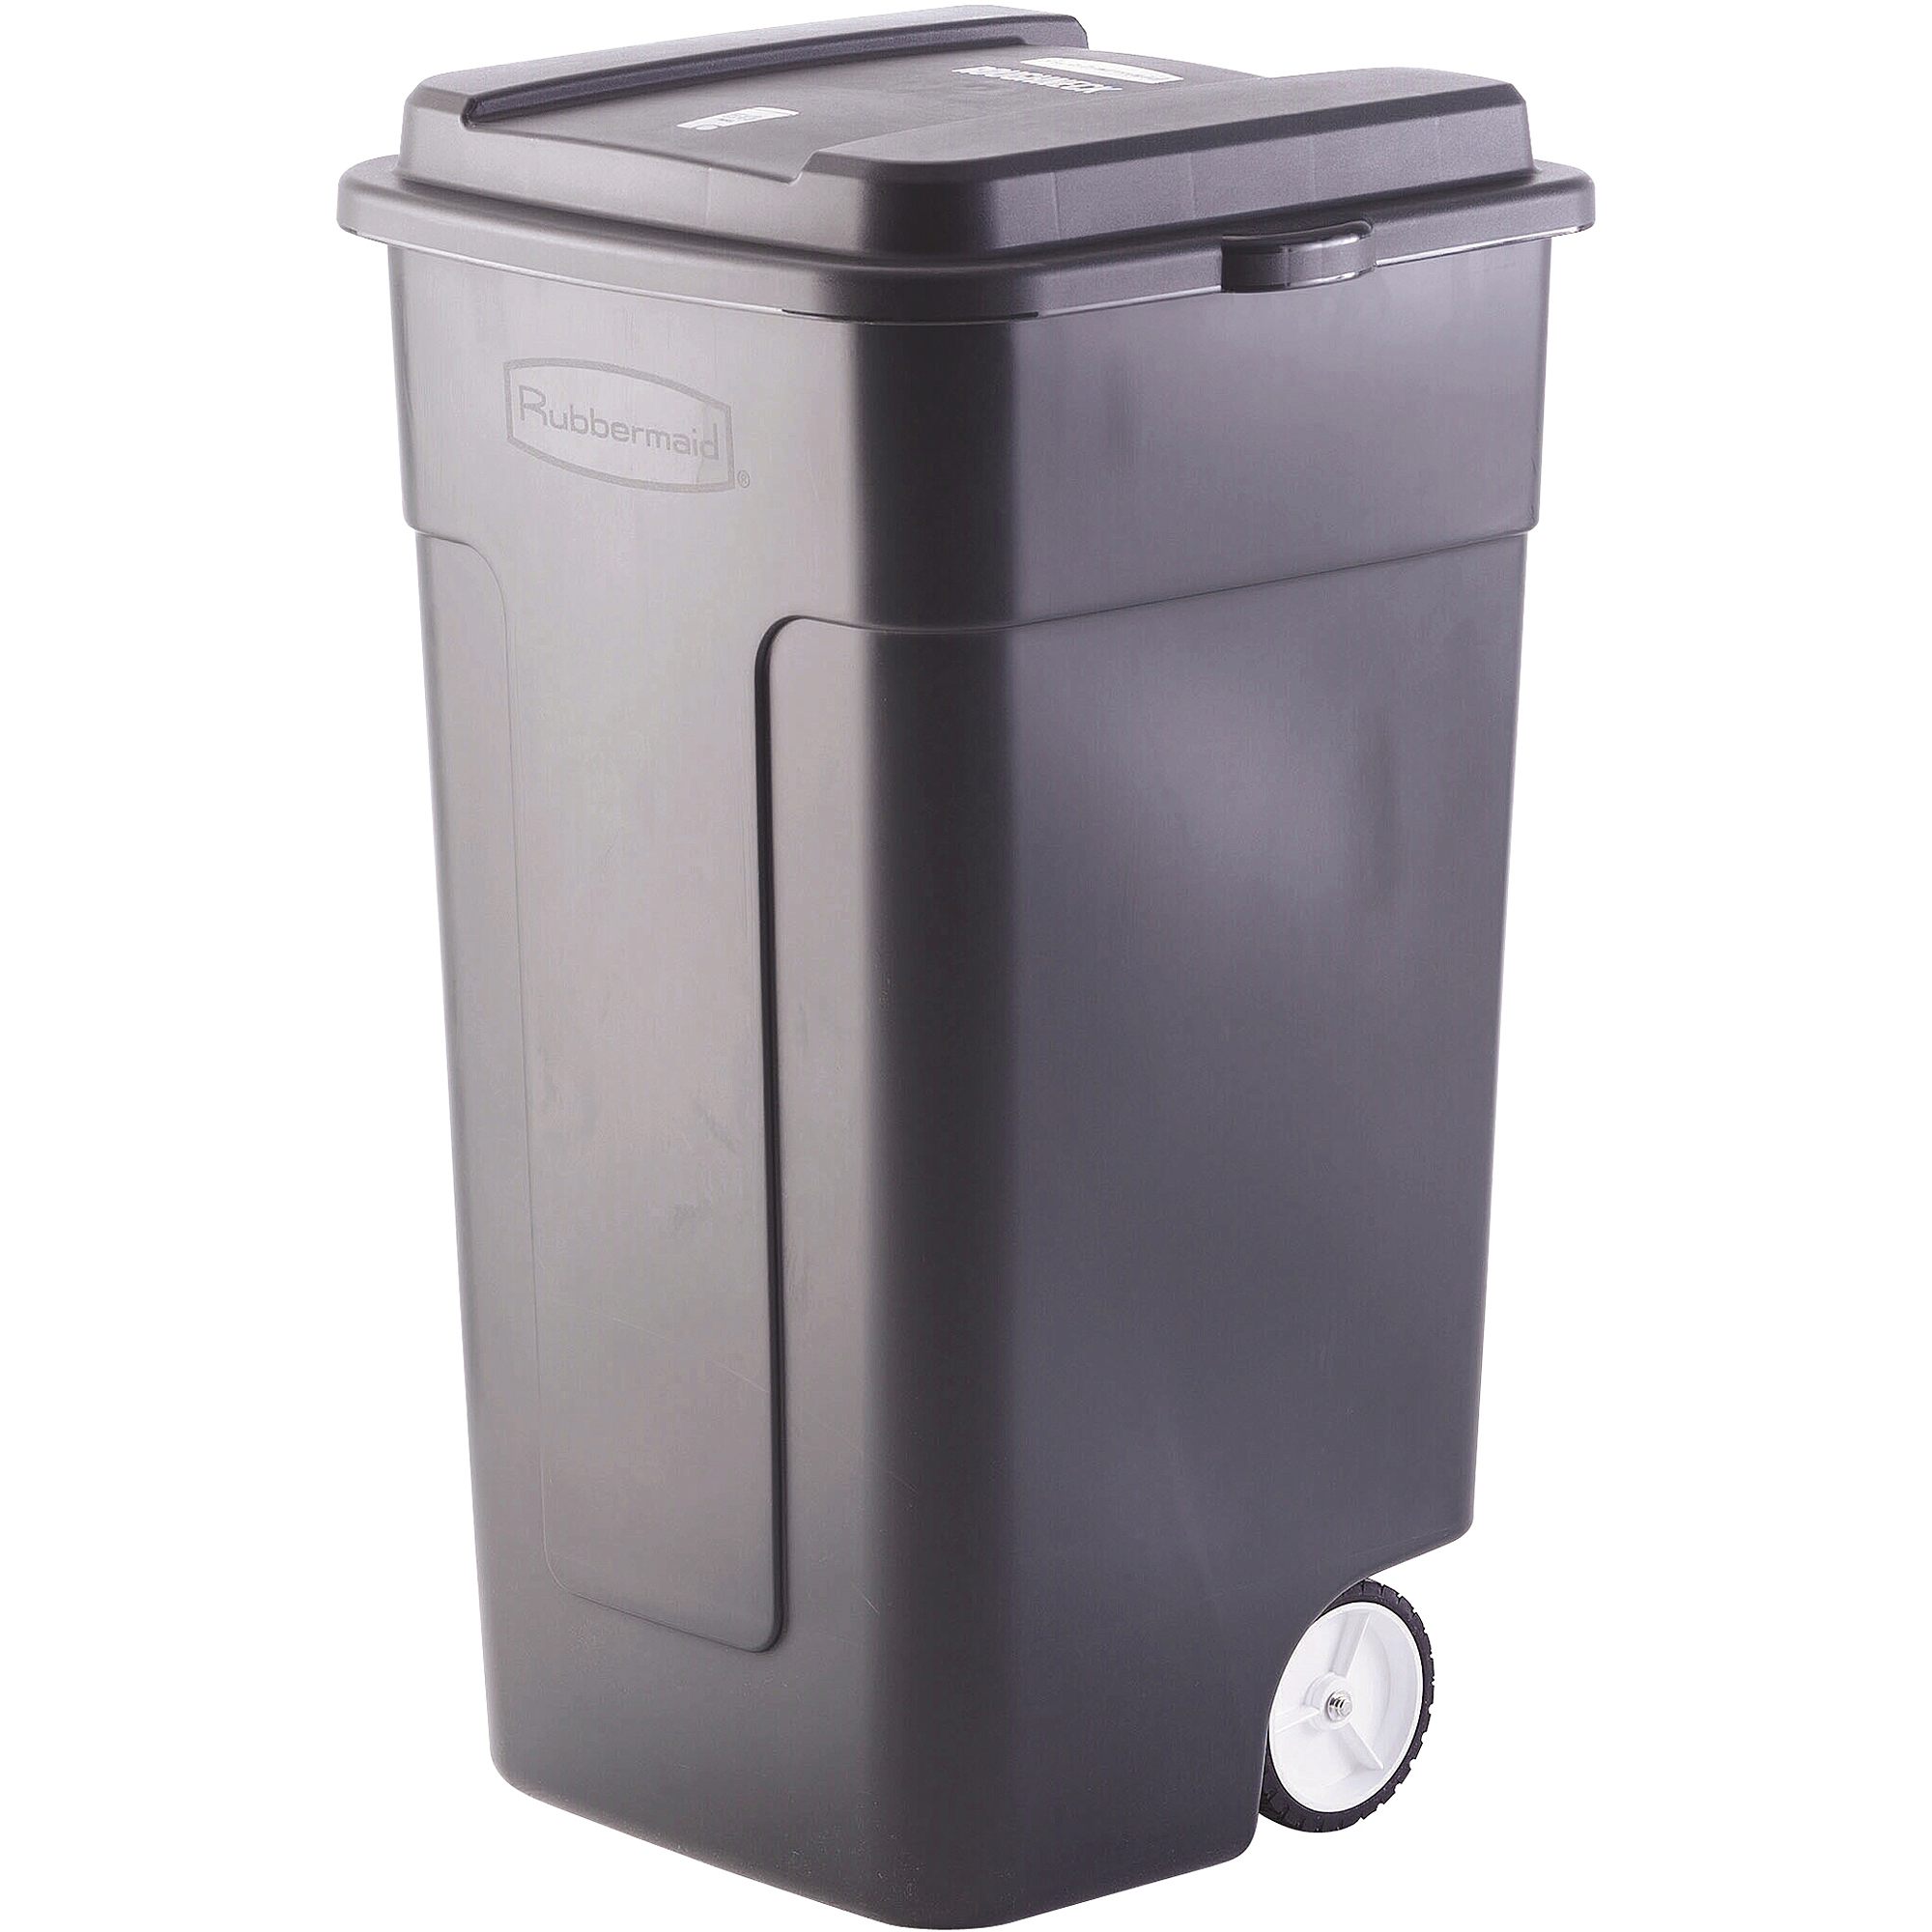 rubbermaid kitchen trash cans commercial cabinets 50 gallon wheeled roughneck trashcan black fg285100bla walmart com